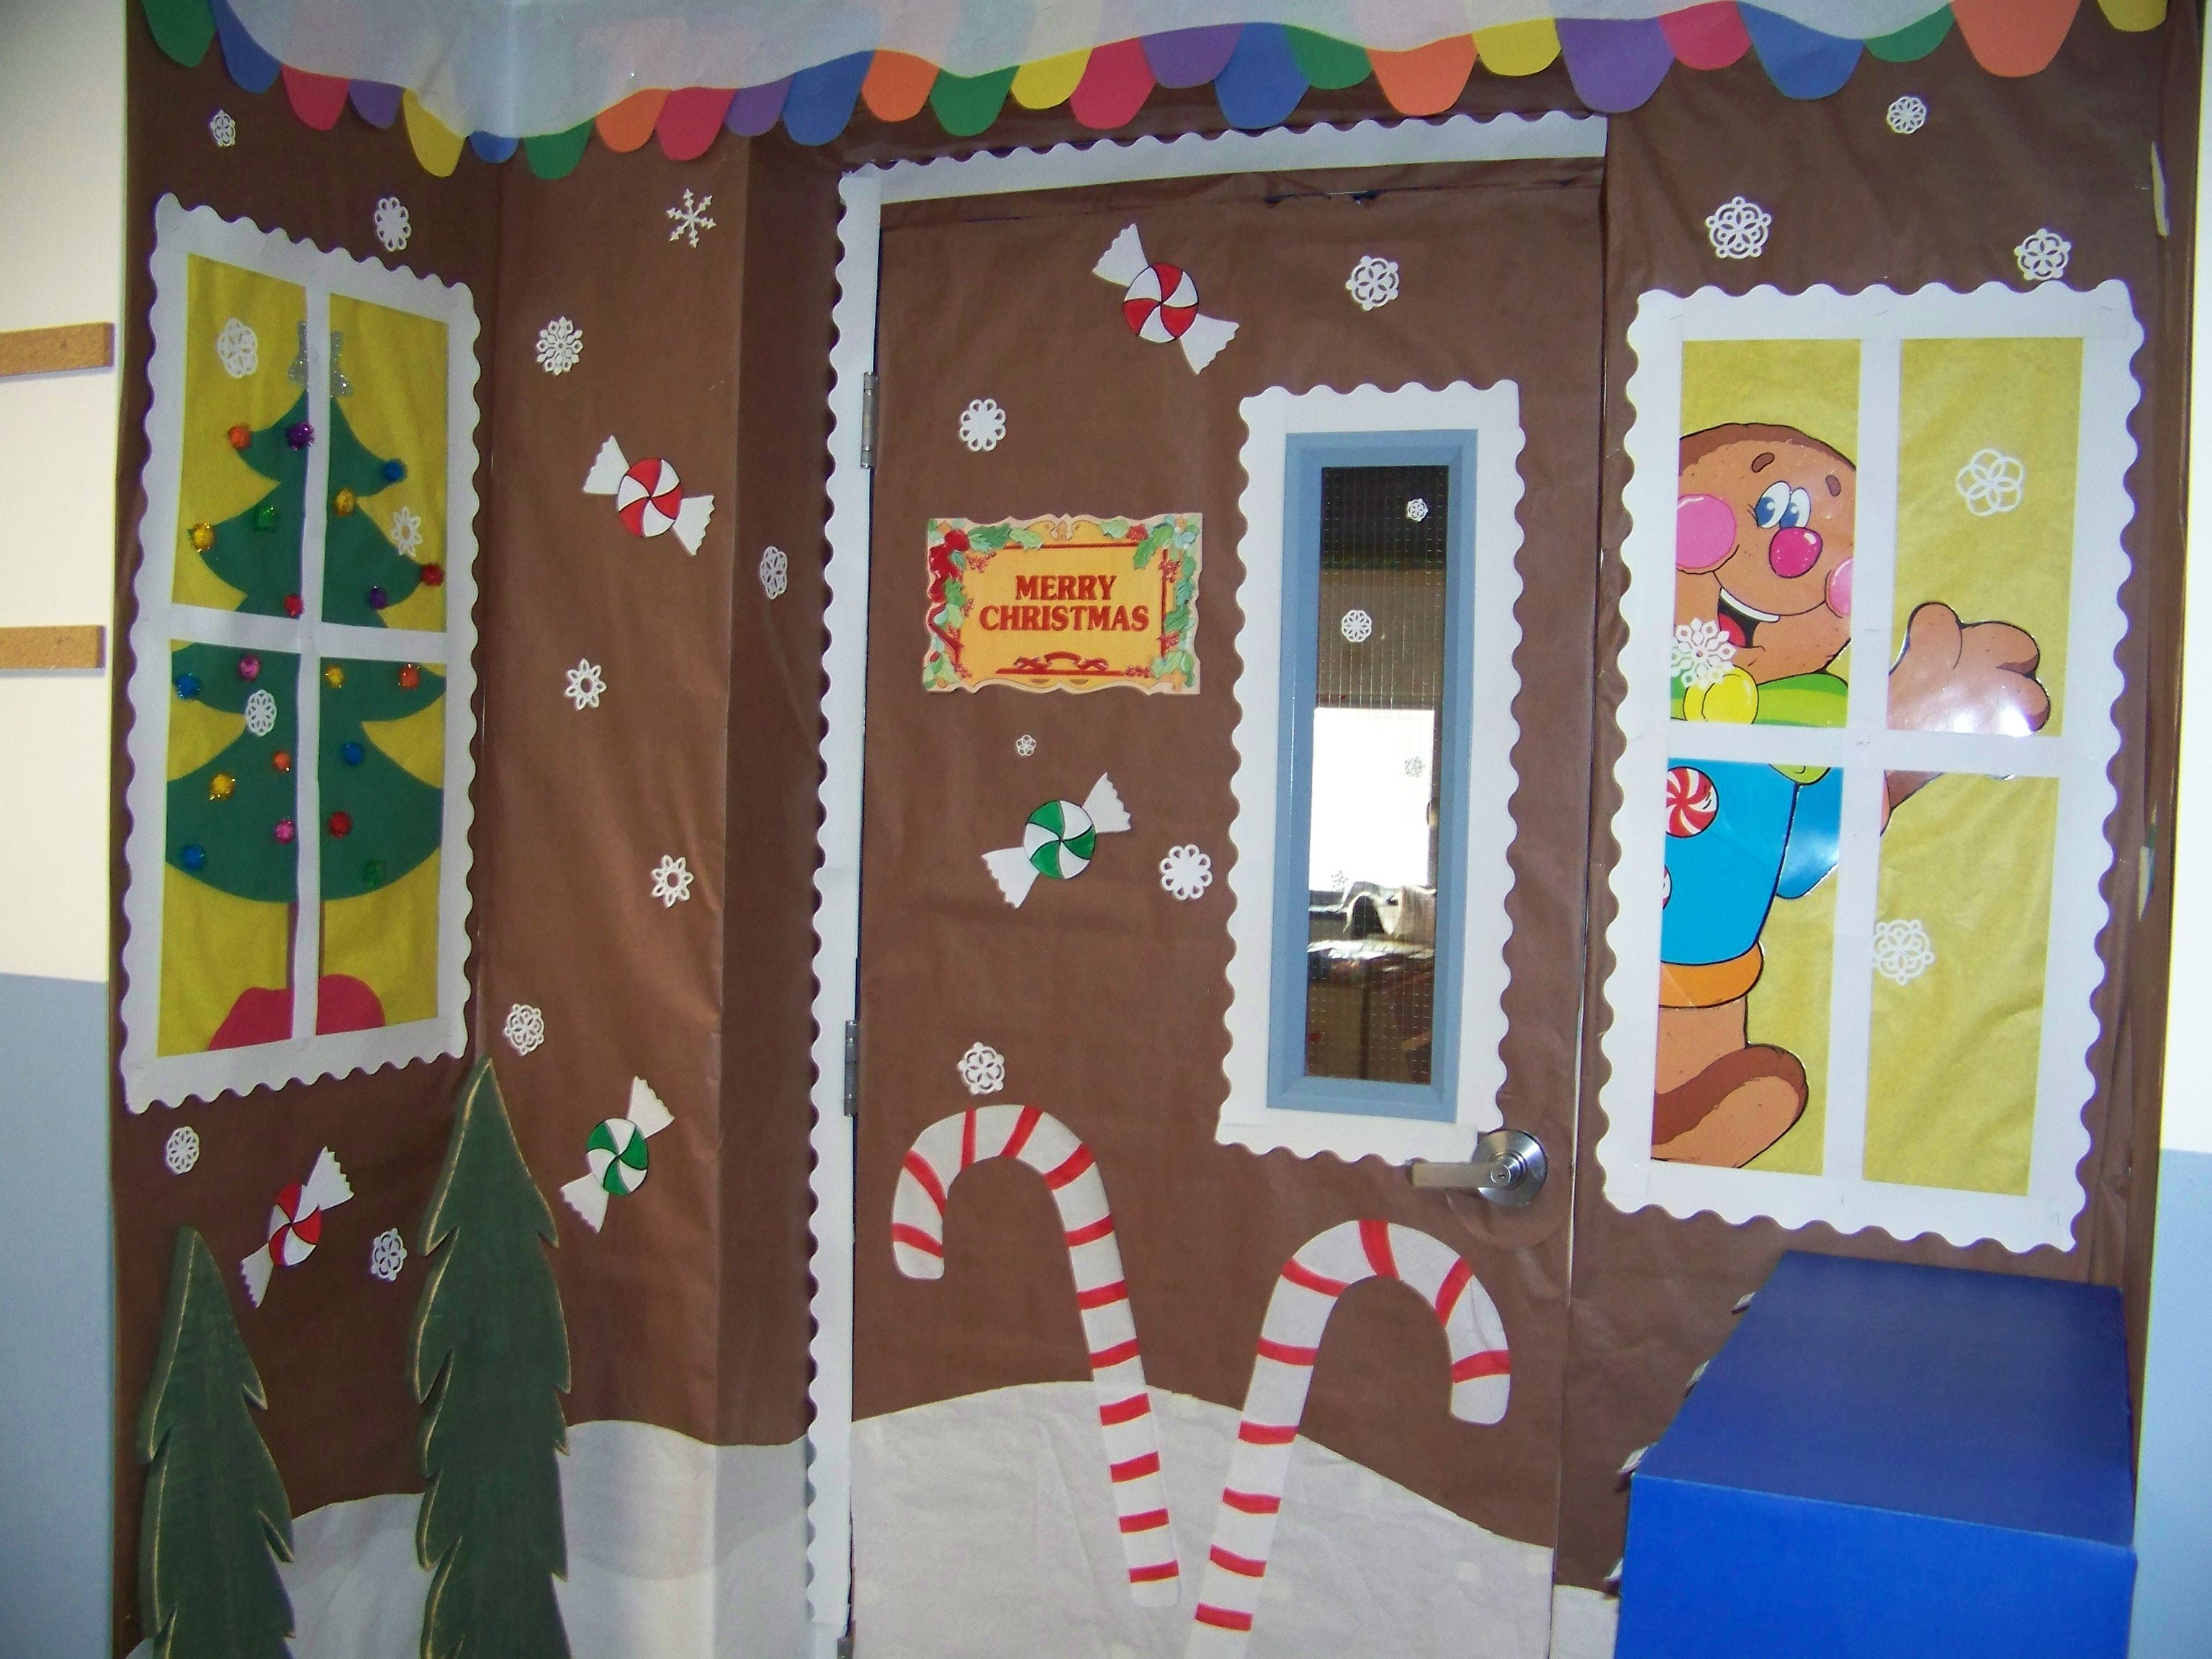 This Is My Classroom Door Gingerbread House It Took Me